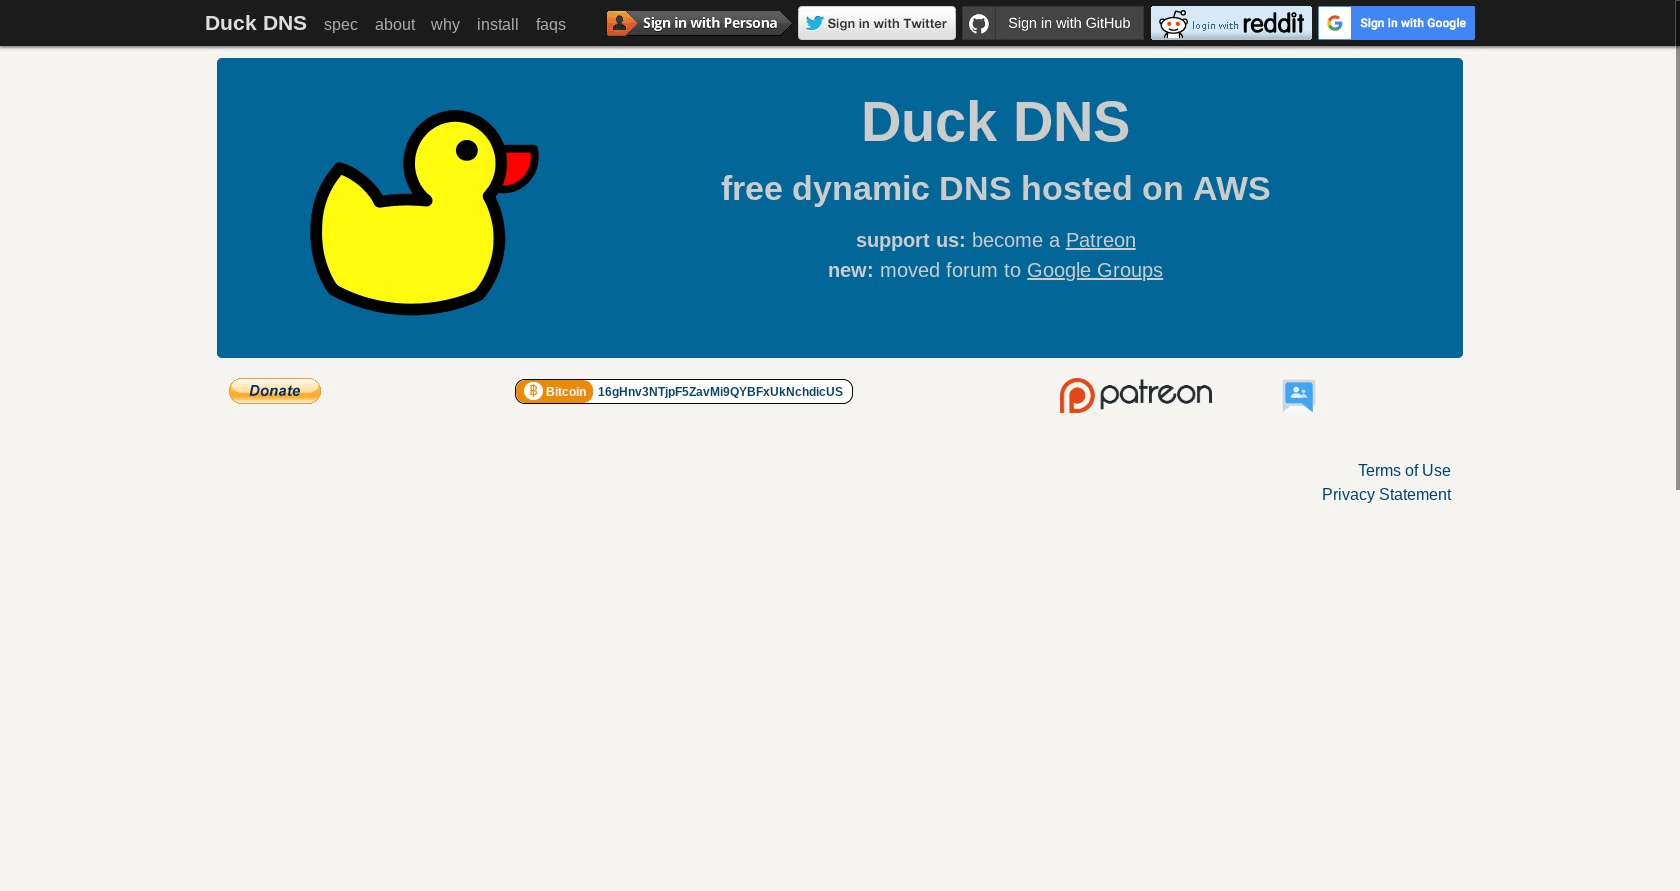 DuckDNS.org home page